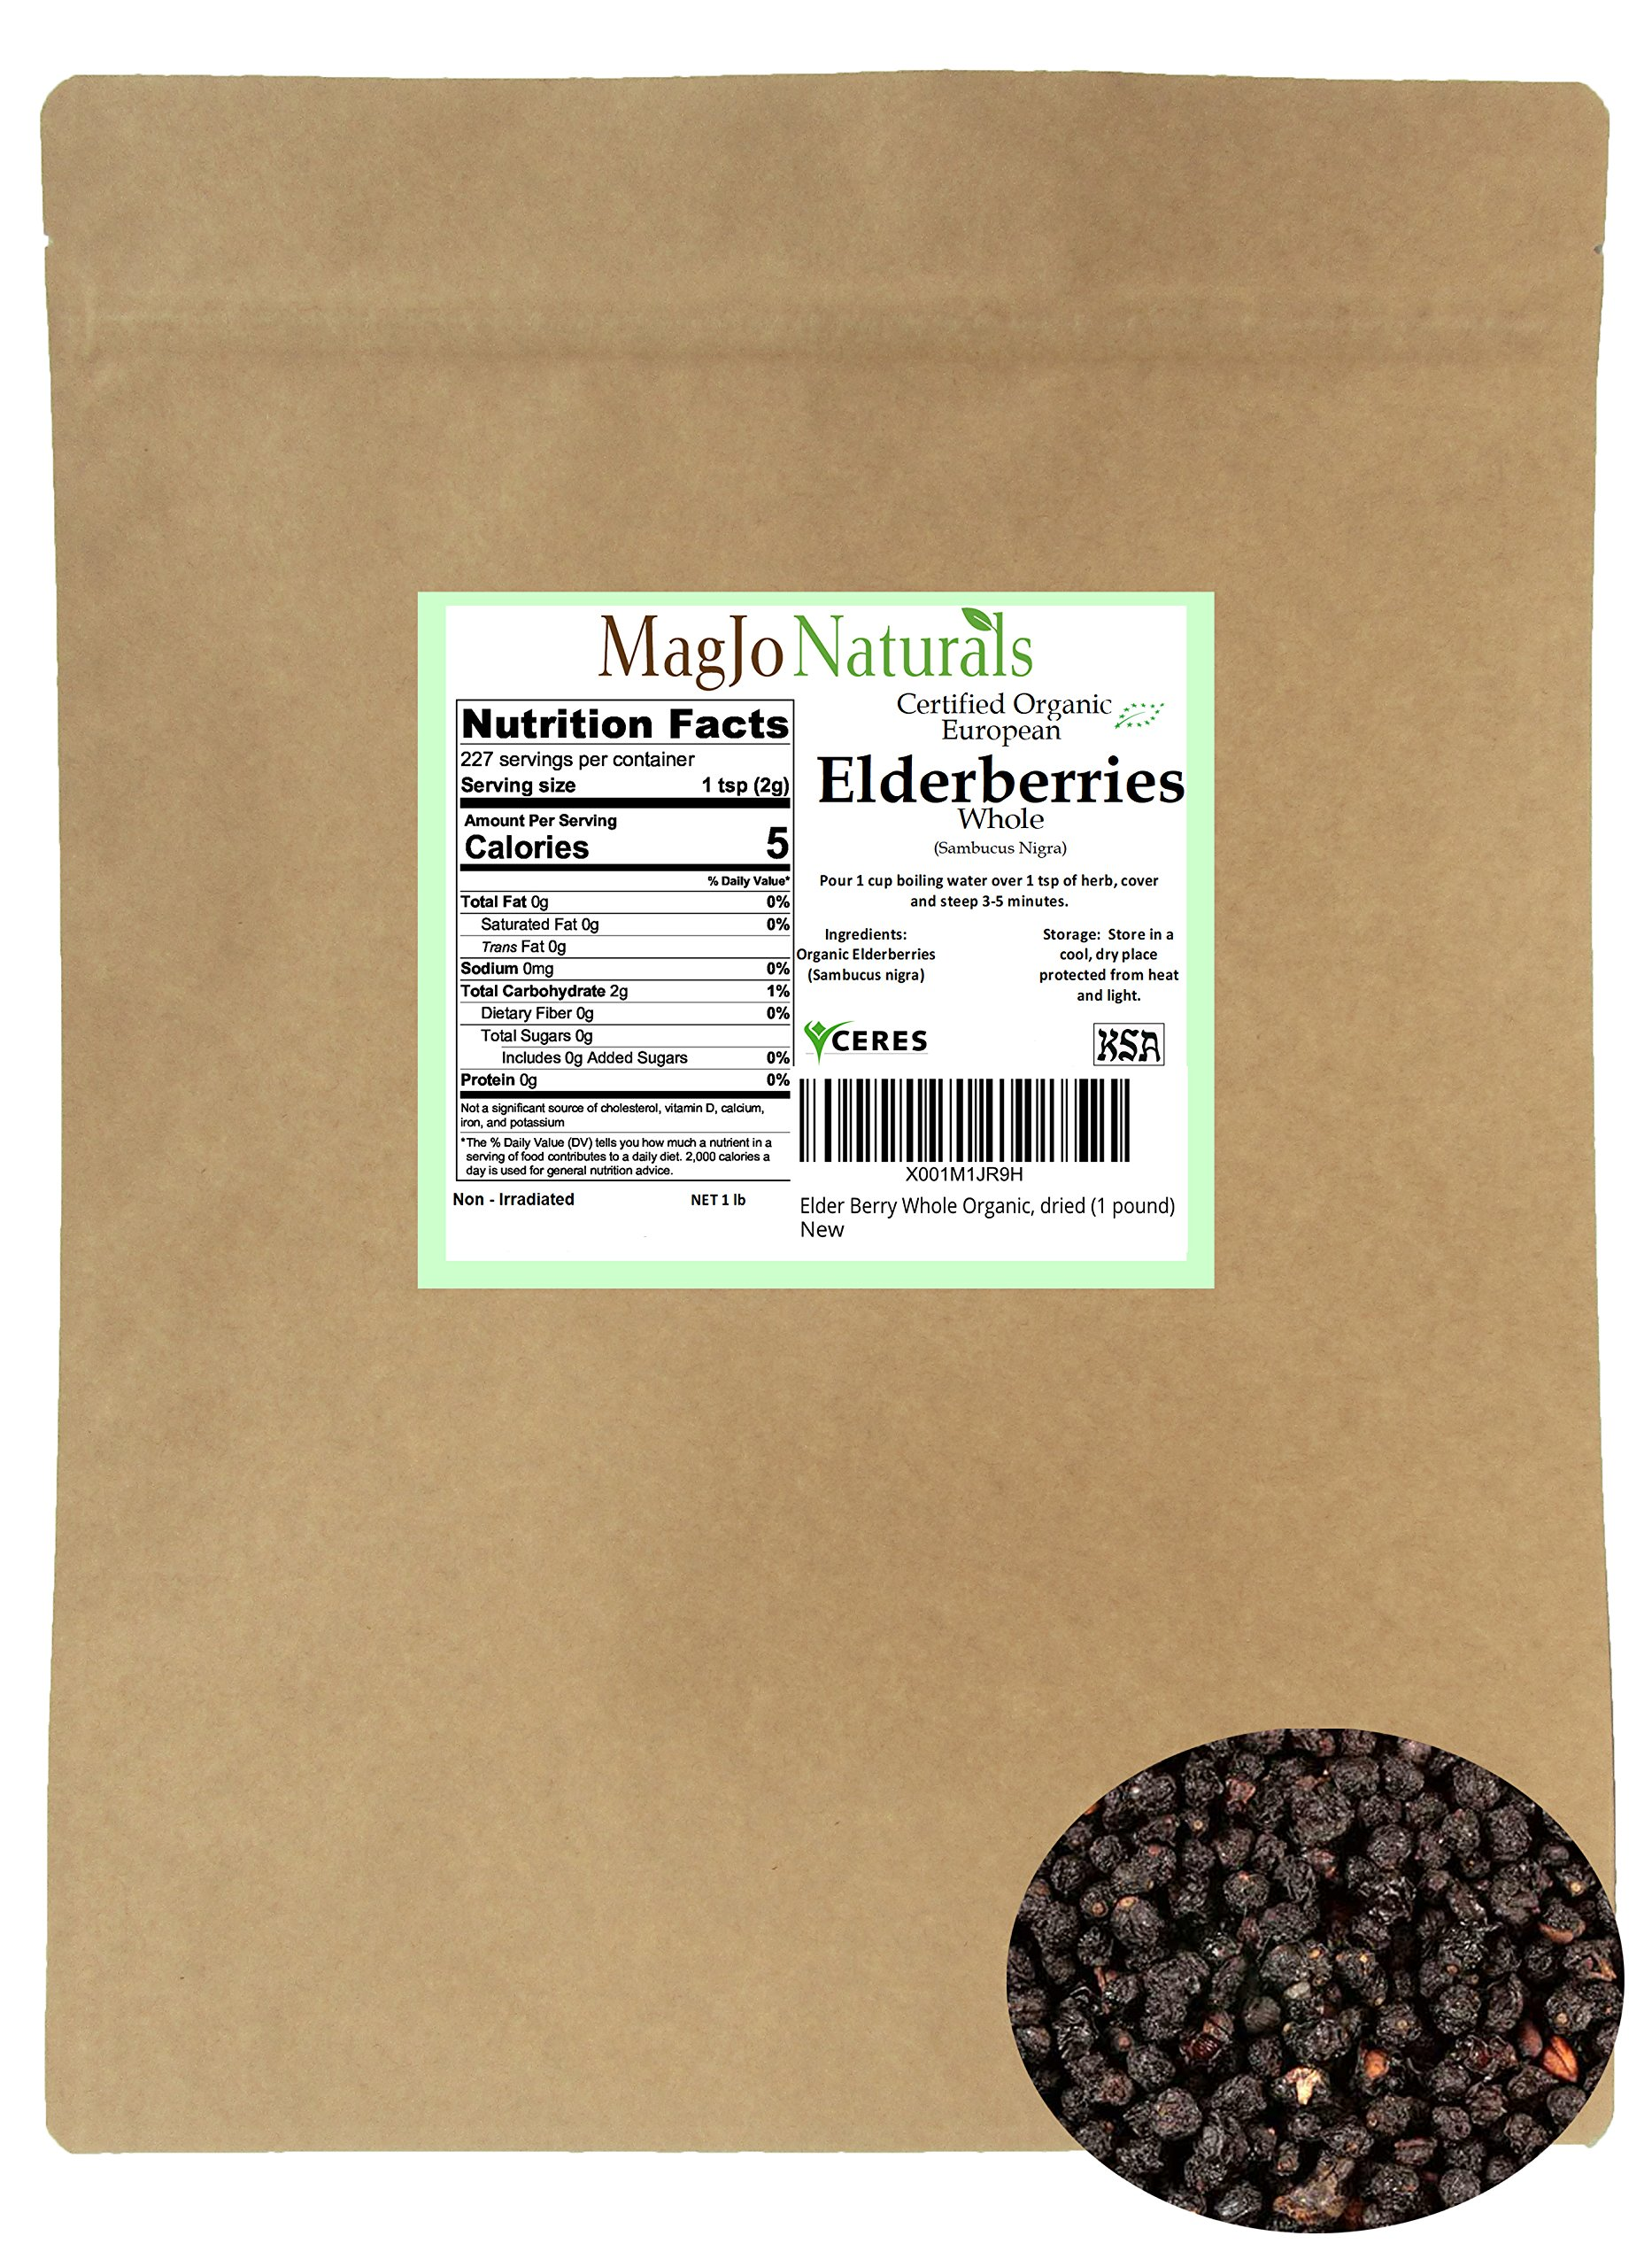 Elder Berry Whole Organic, dried (1 pound) by MagJo Naturals (Image #3)